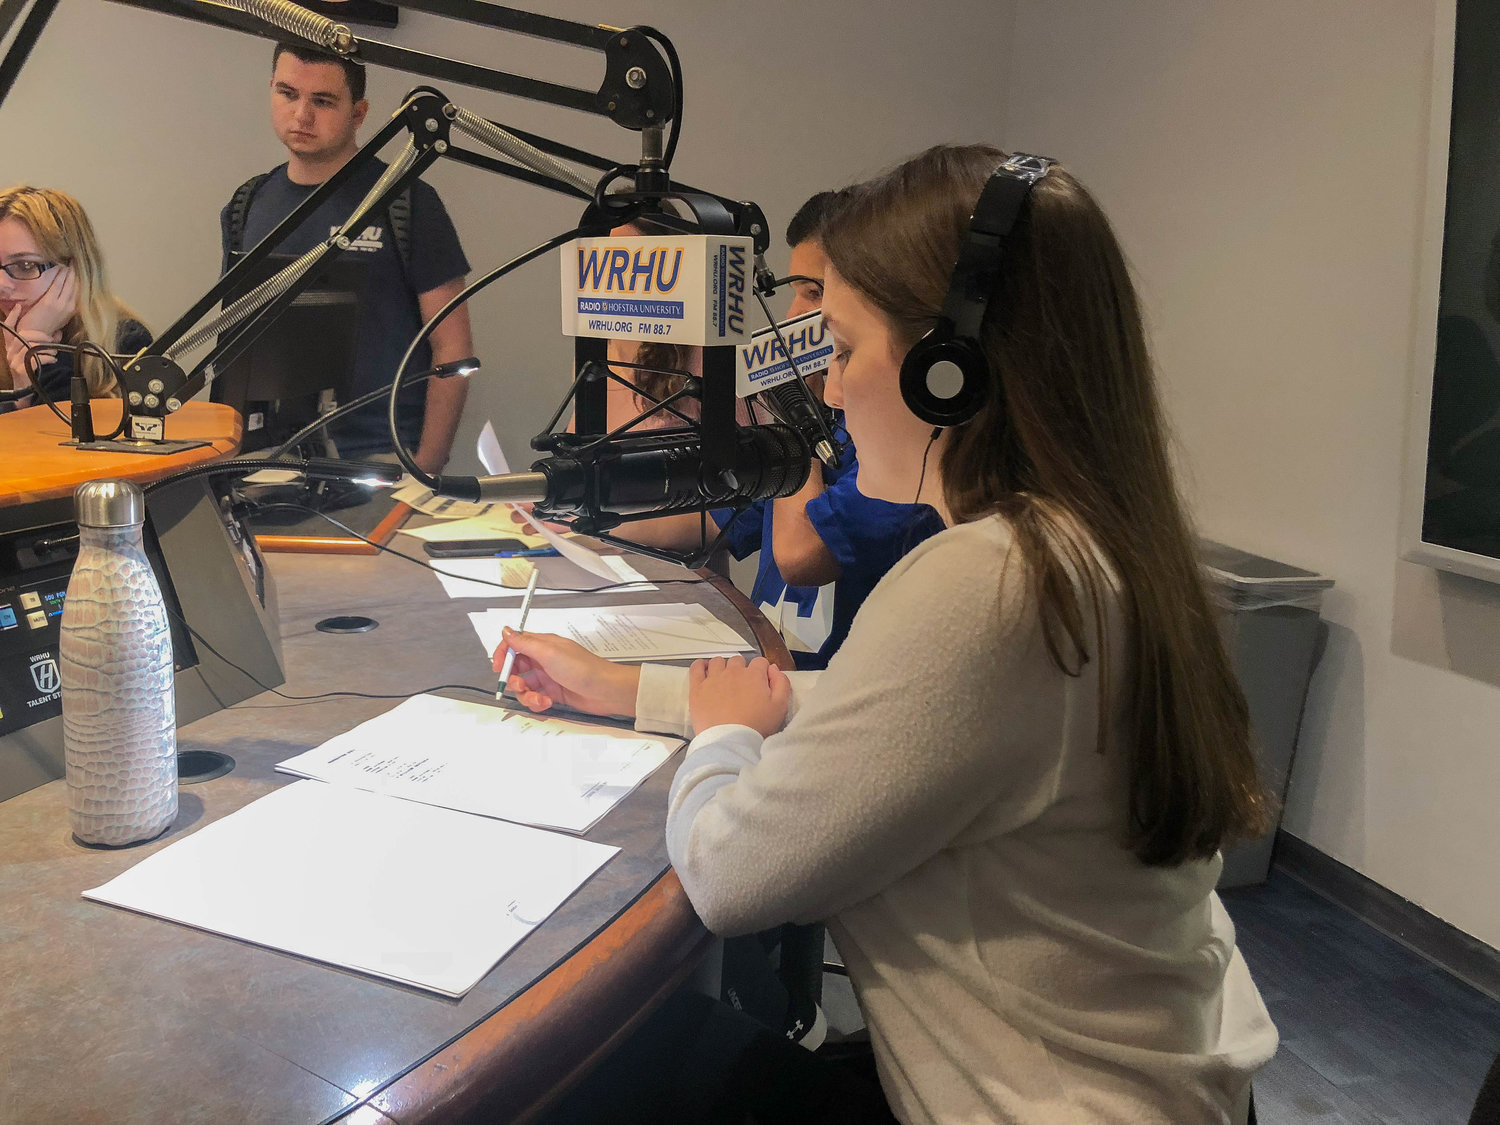 Students can participate in a number of different talk shows at the station, including Hofstra Morning Wake Up Call, Newsline and The Locker Room.